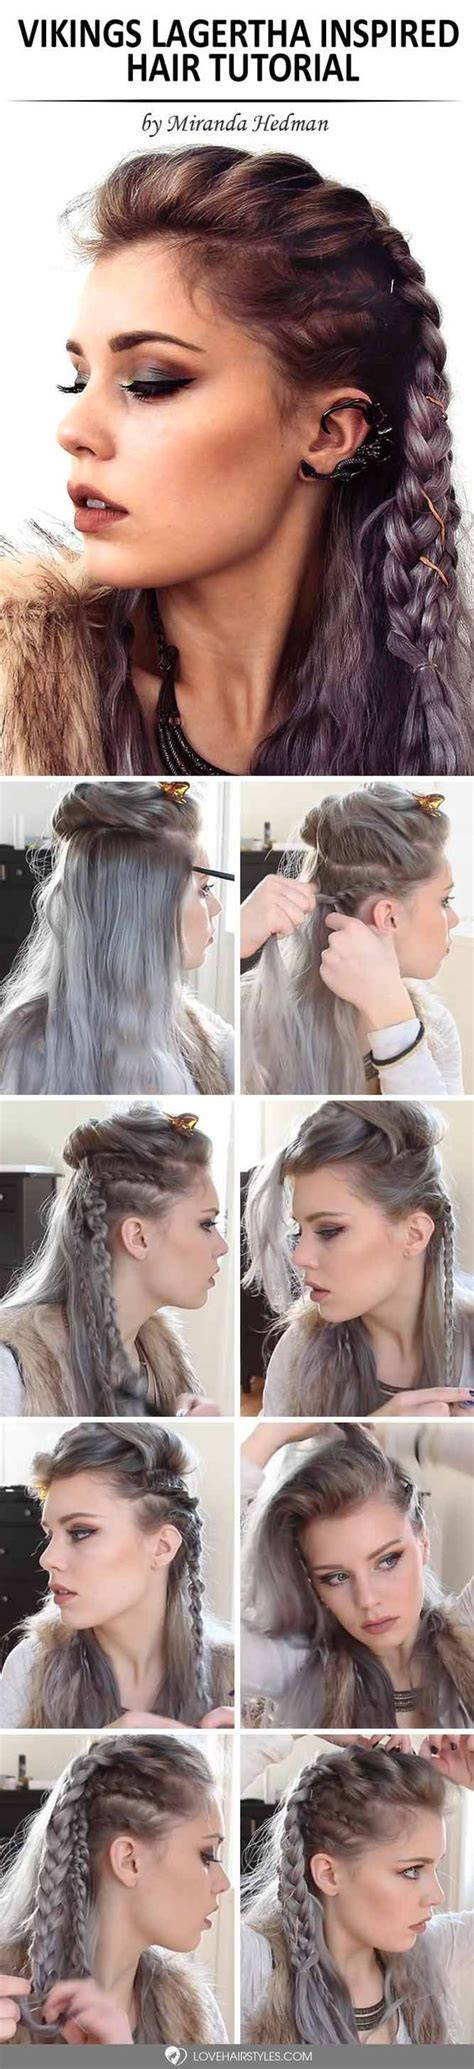 vikings hairstyles how to 25 best lagertha hair ideas on pinterest viking hair